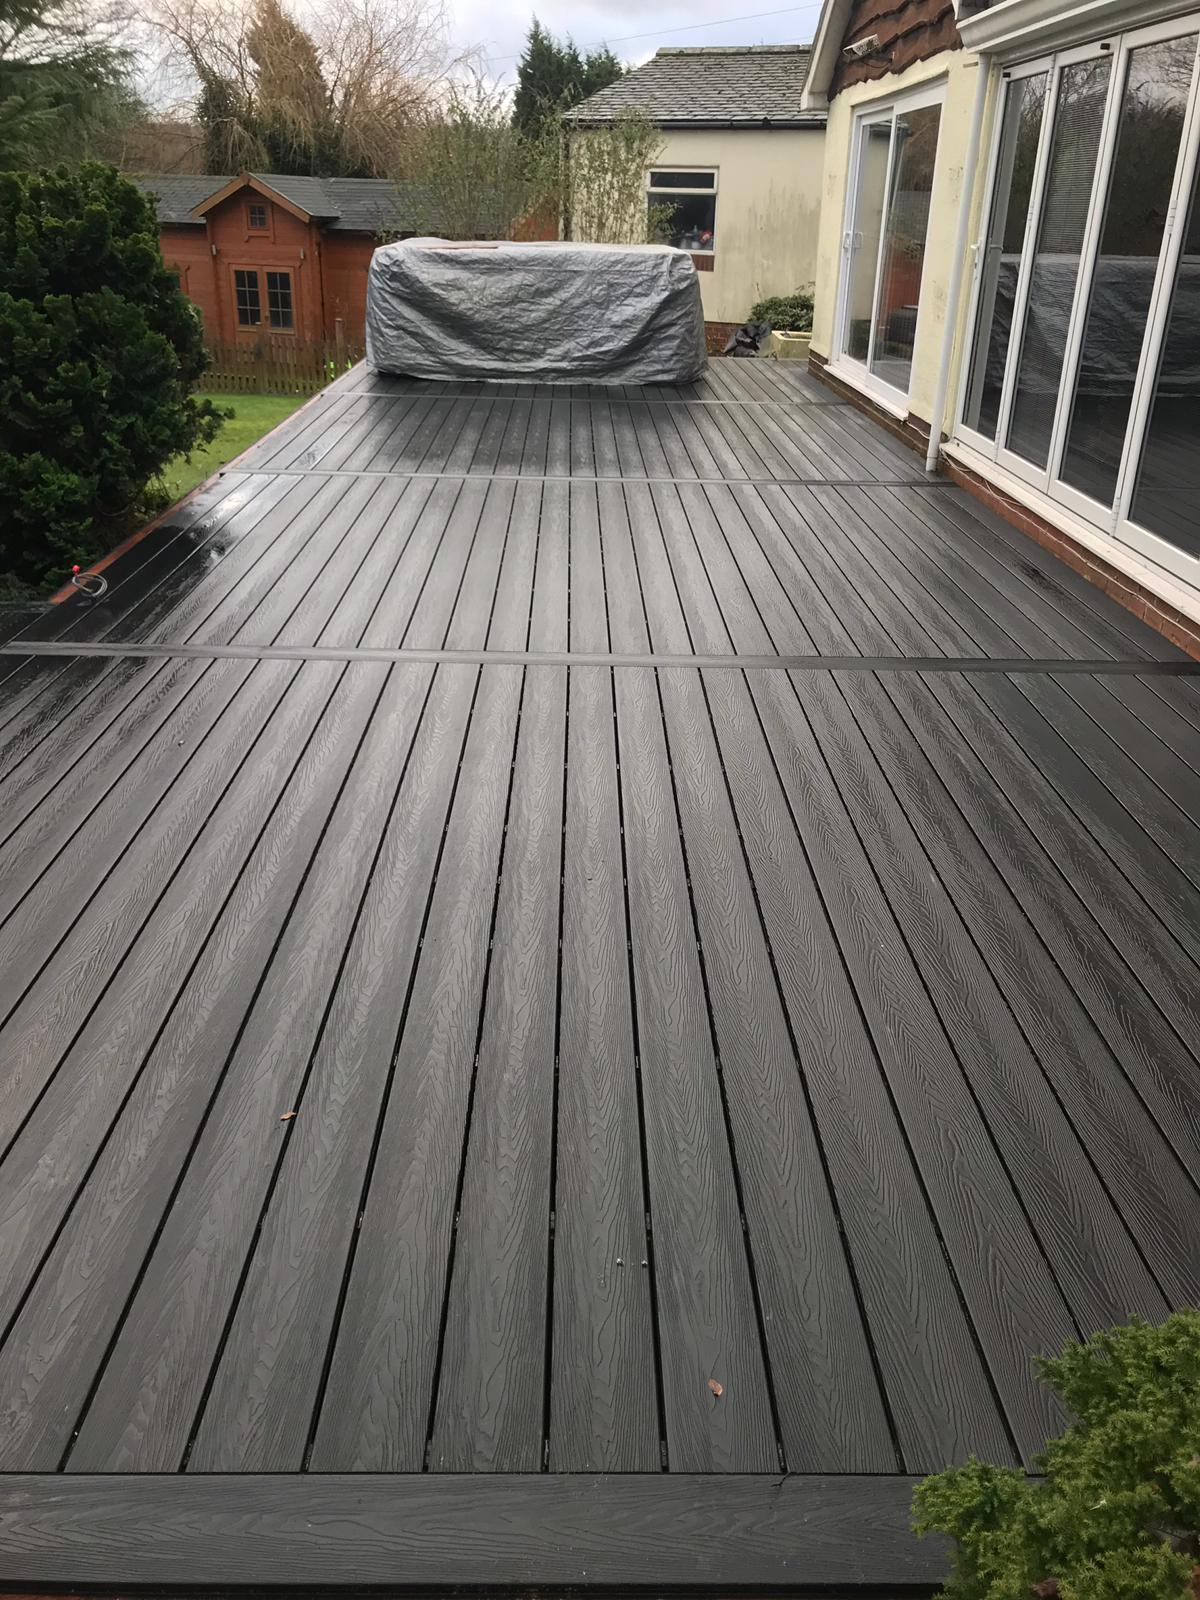 Deep embossed composite decking in mist grey , anti slip